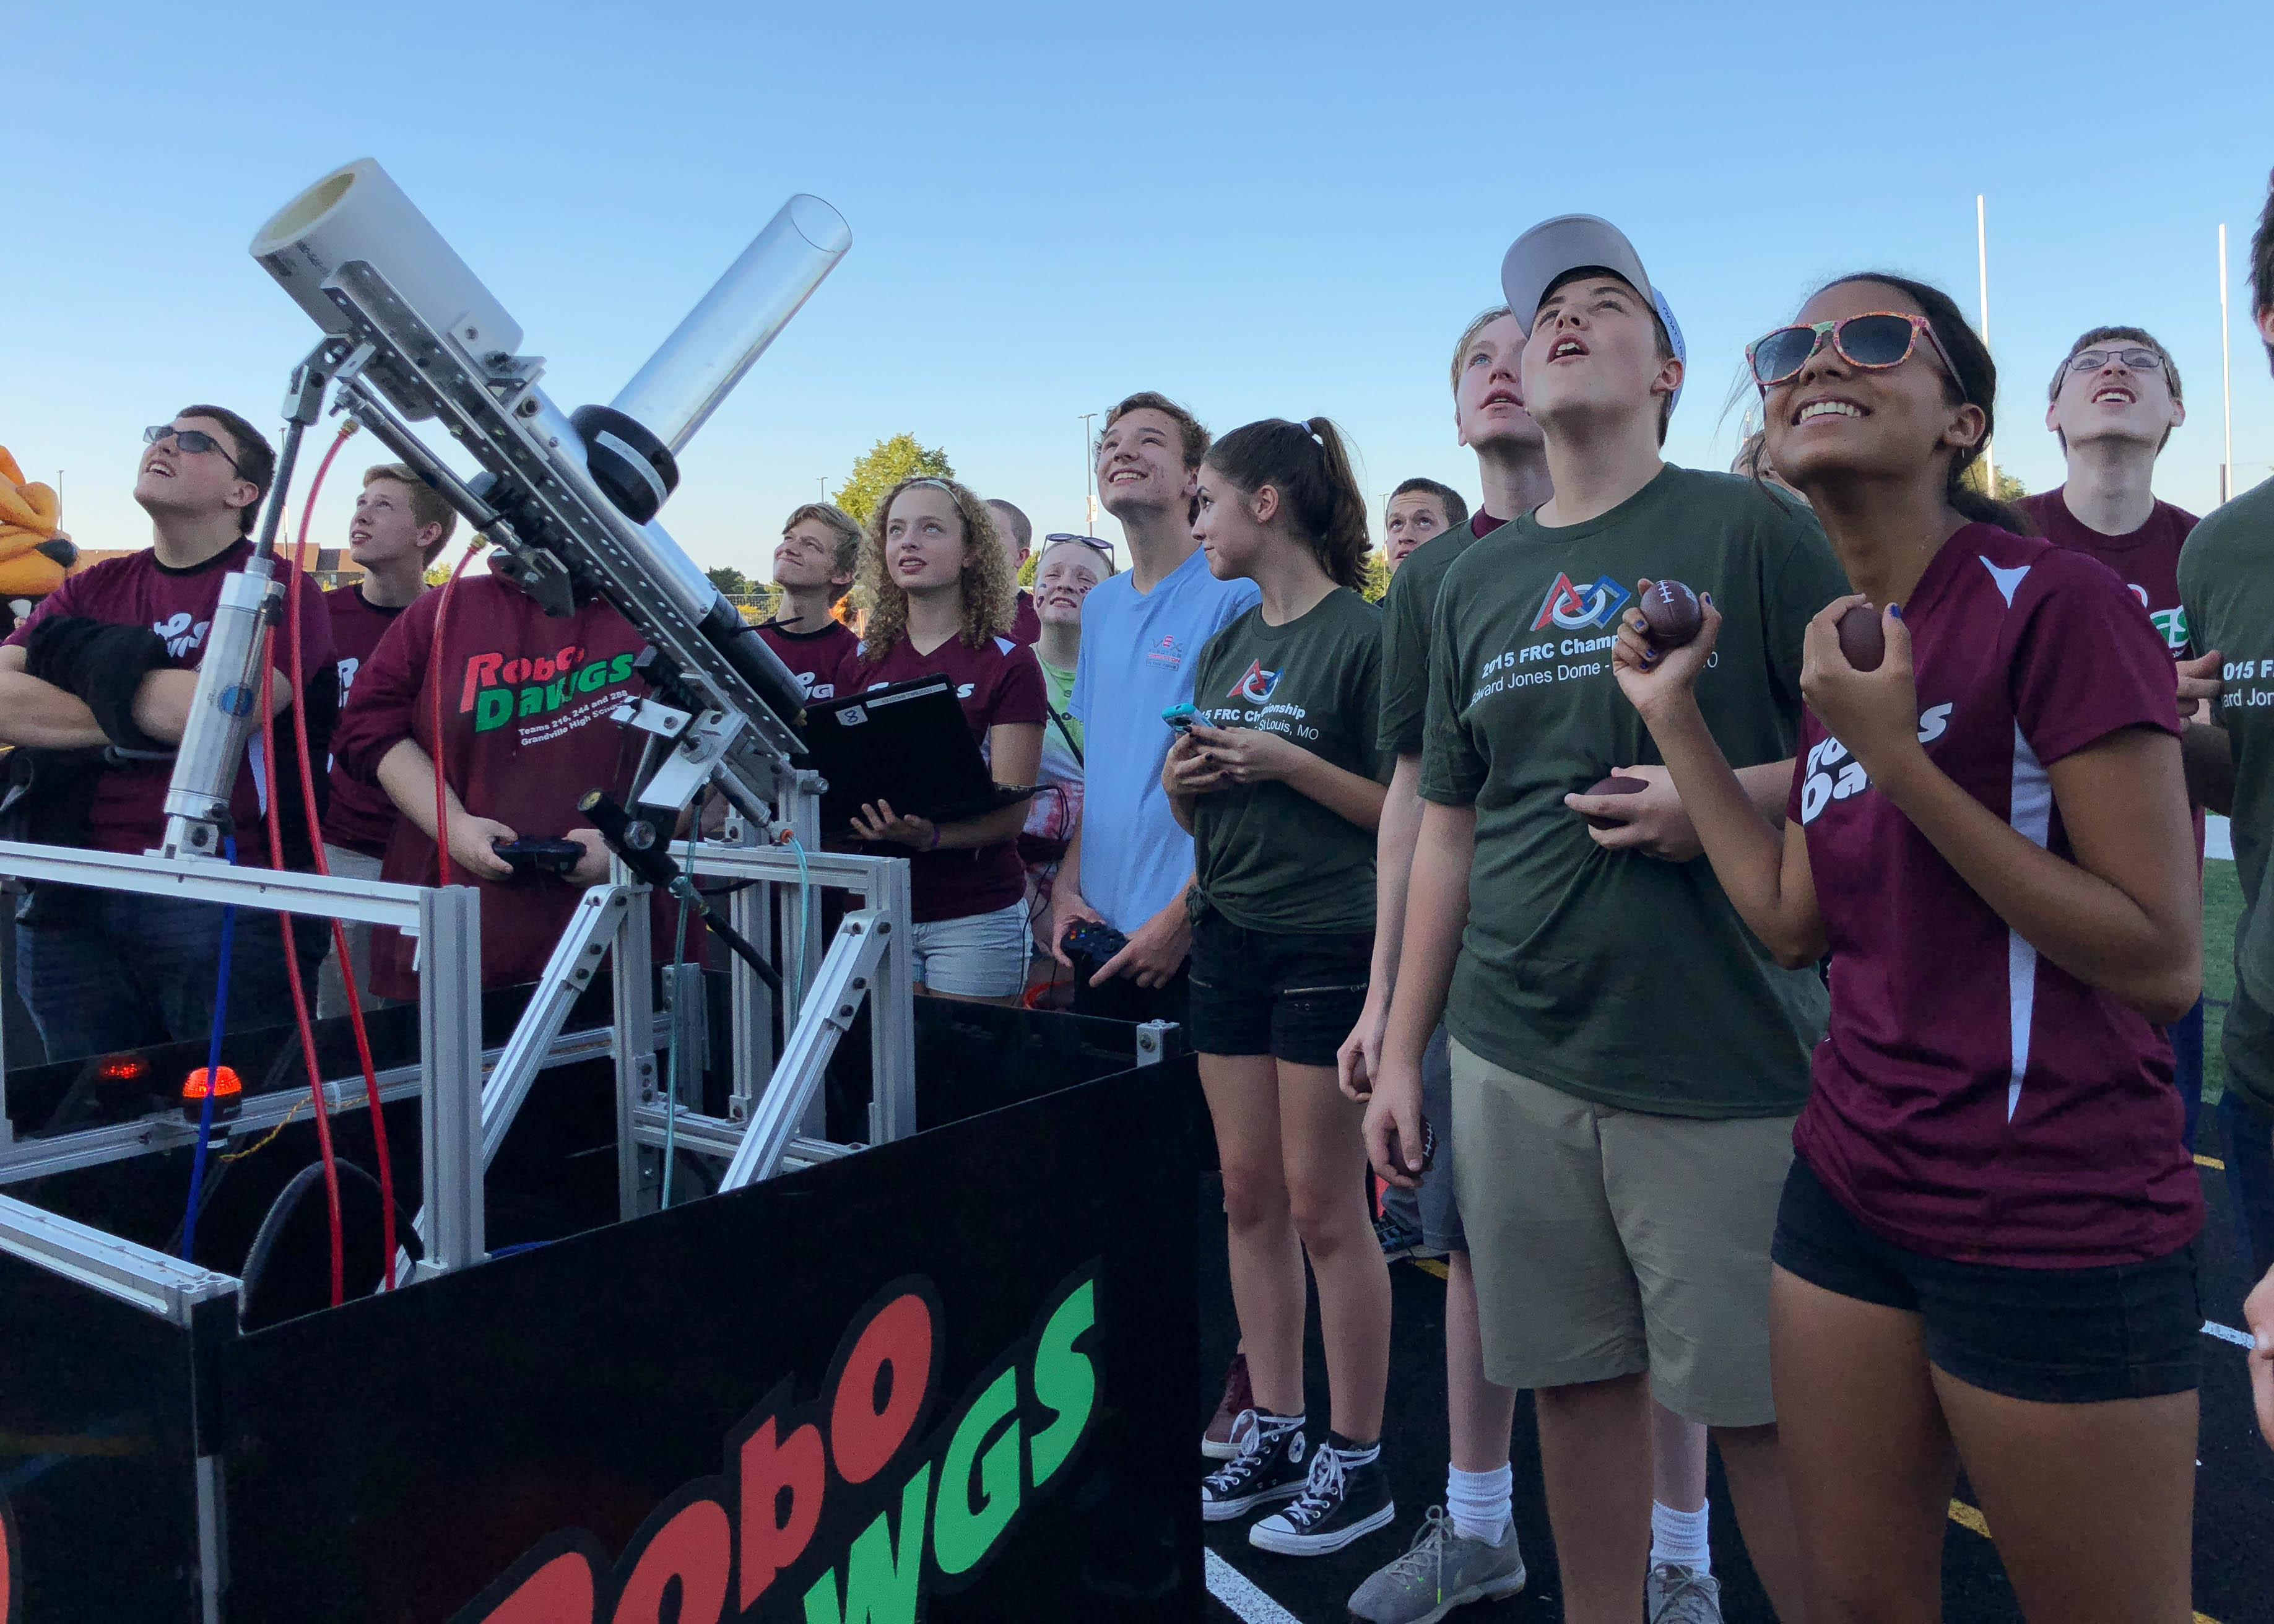 RoboDawgs team shoots t-shirts into stands at game